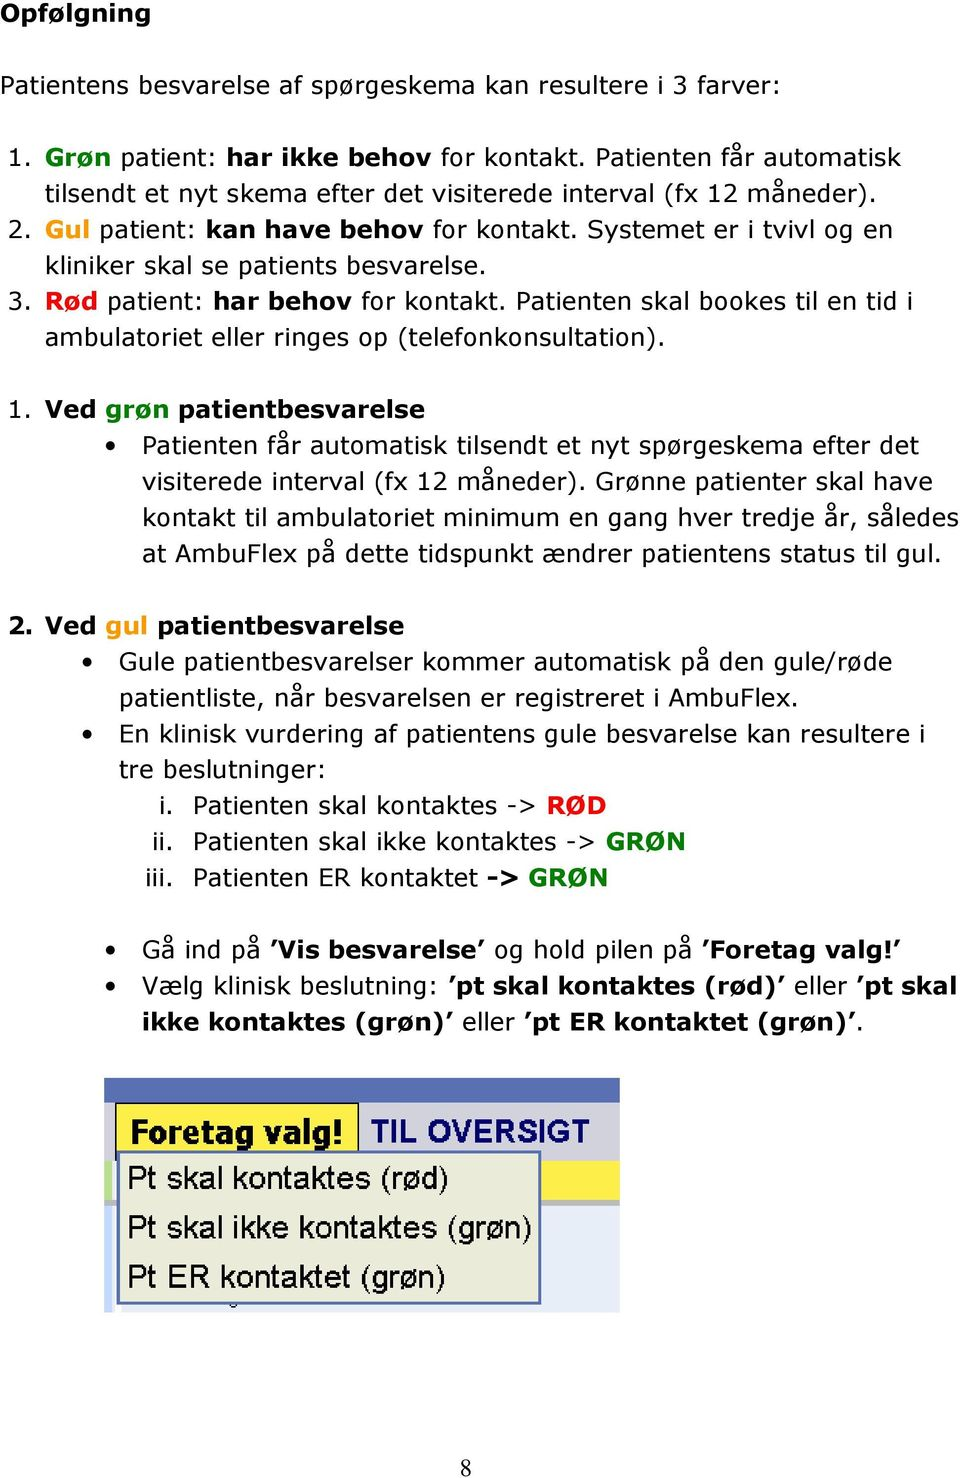 Systemet er i tvivl og en kliniker skal se patients besvarelse. 3. Rød patient: har behov for kontakt. Patienten skal bookes til en tid i ambulatoriet eller ringes op (telefonkonsultation). 1.